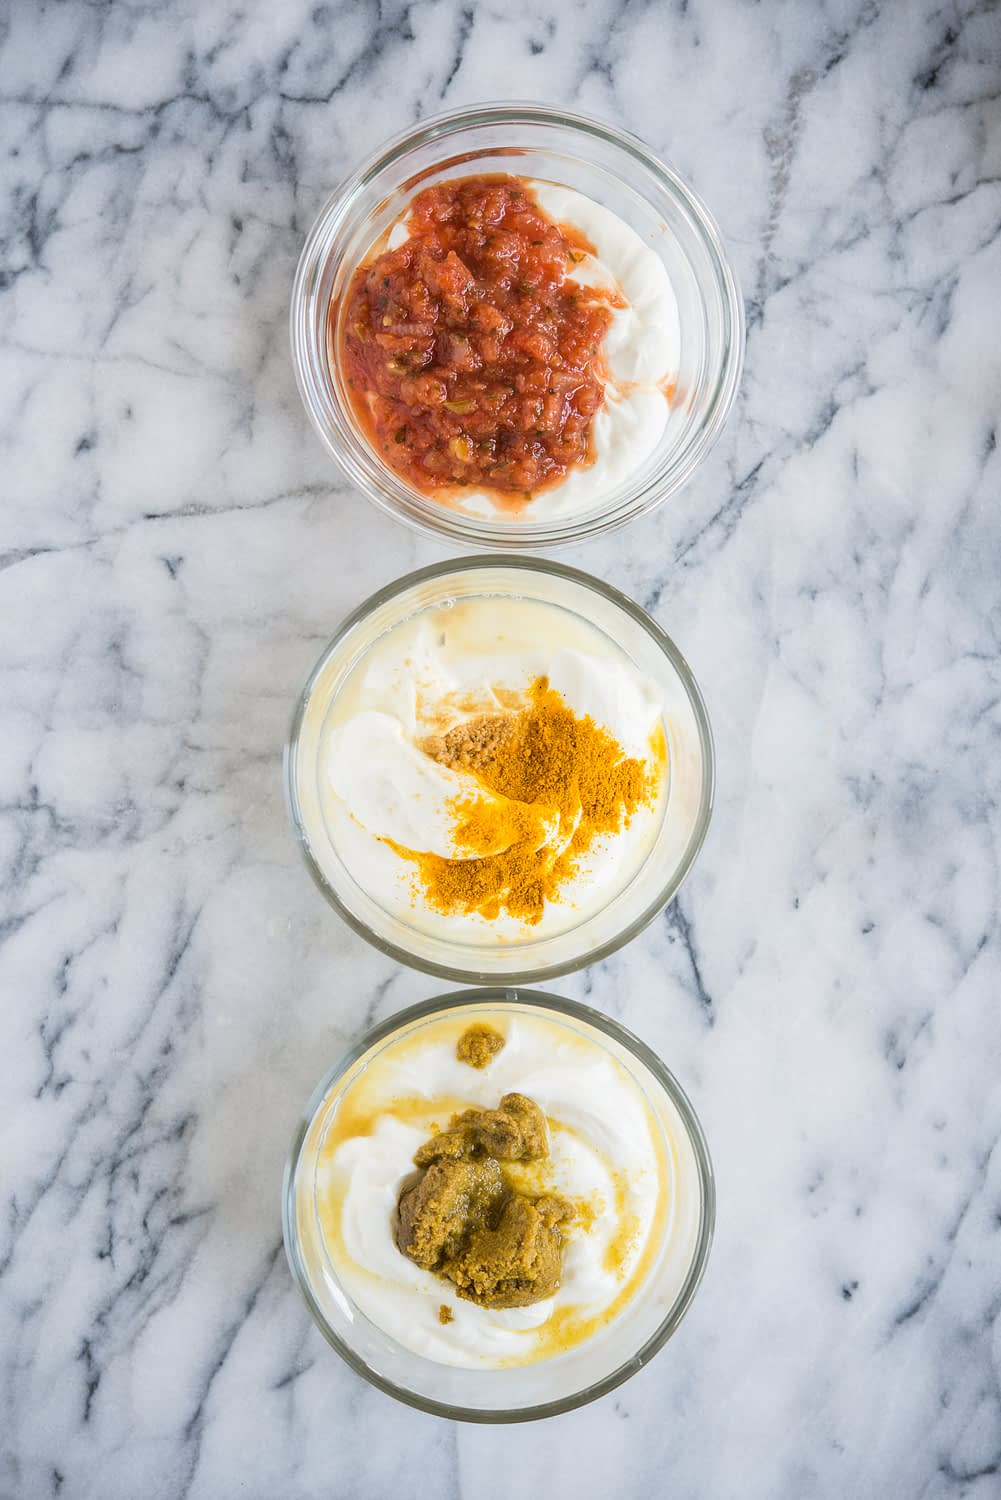 three bowls of greek yogurt lined up with spices on top sitting on a marble counter